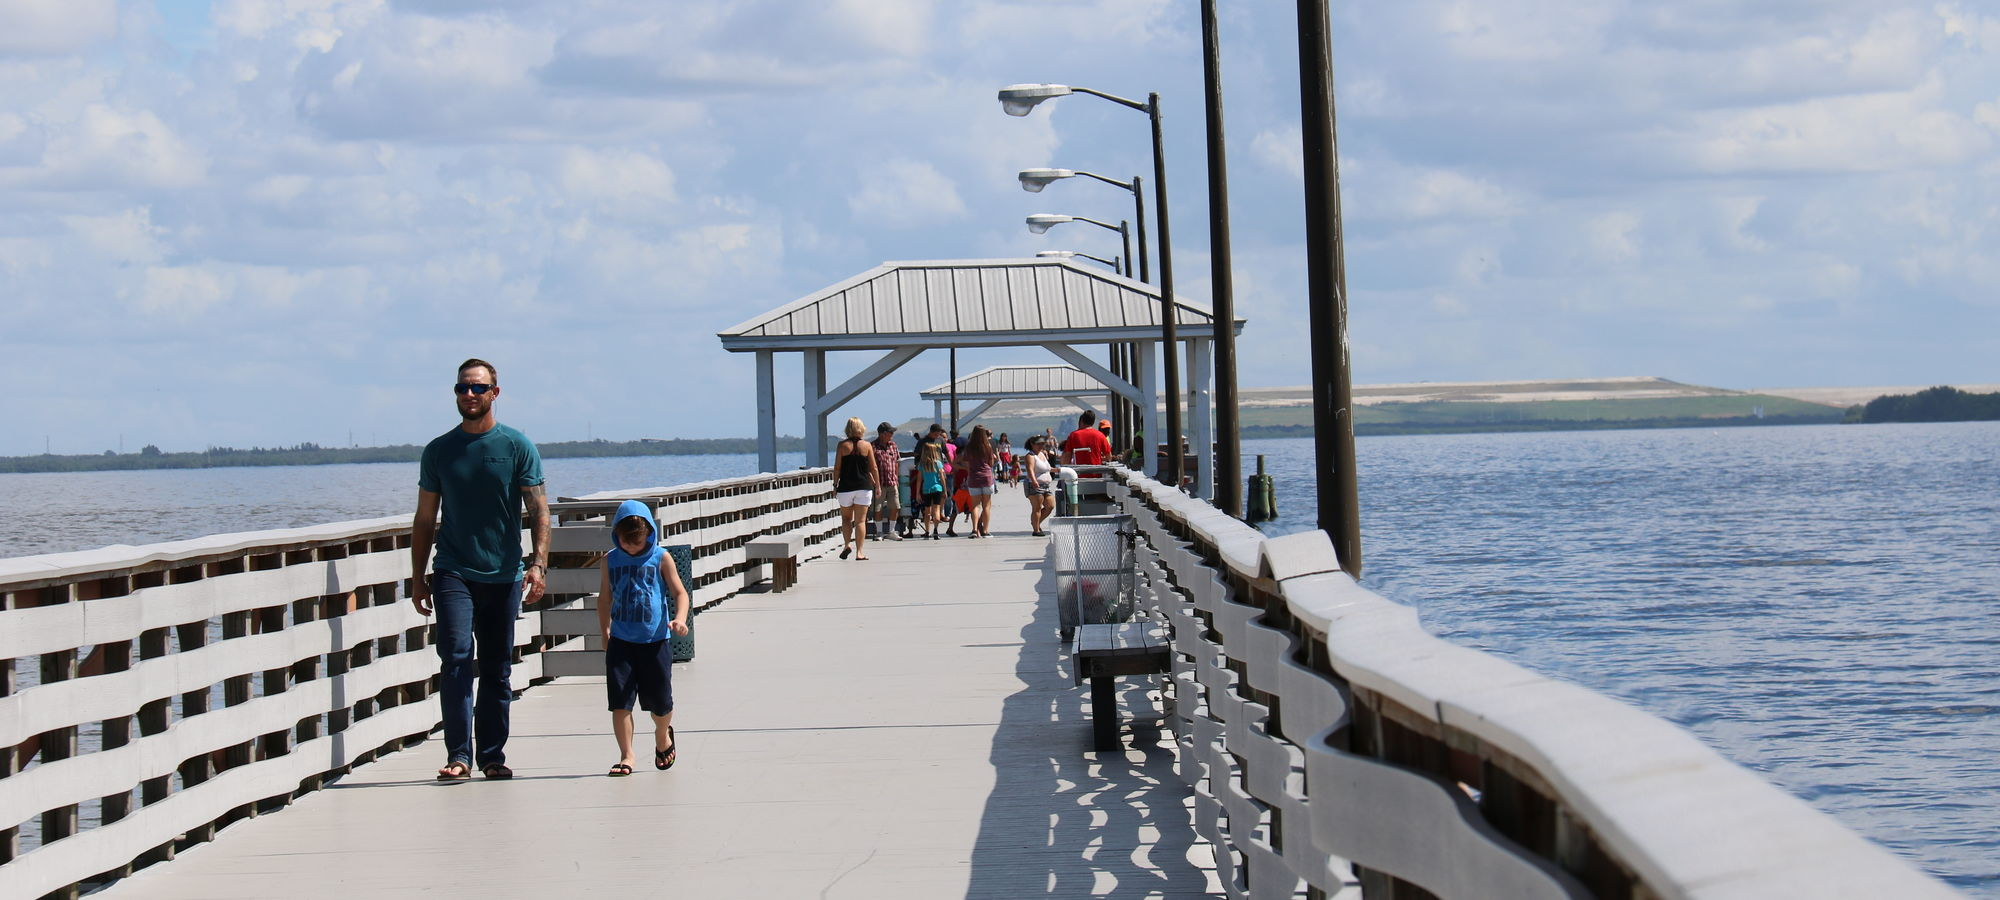 People walking on pier